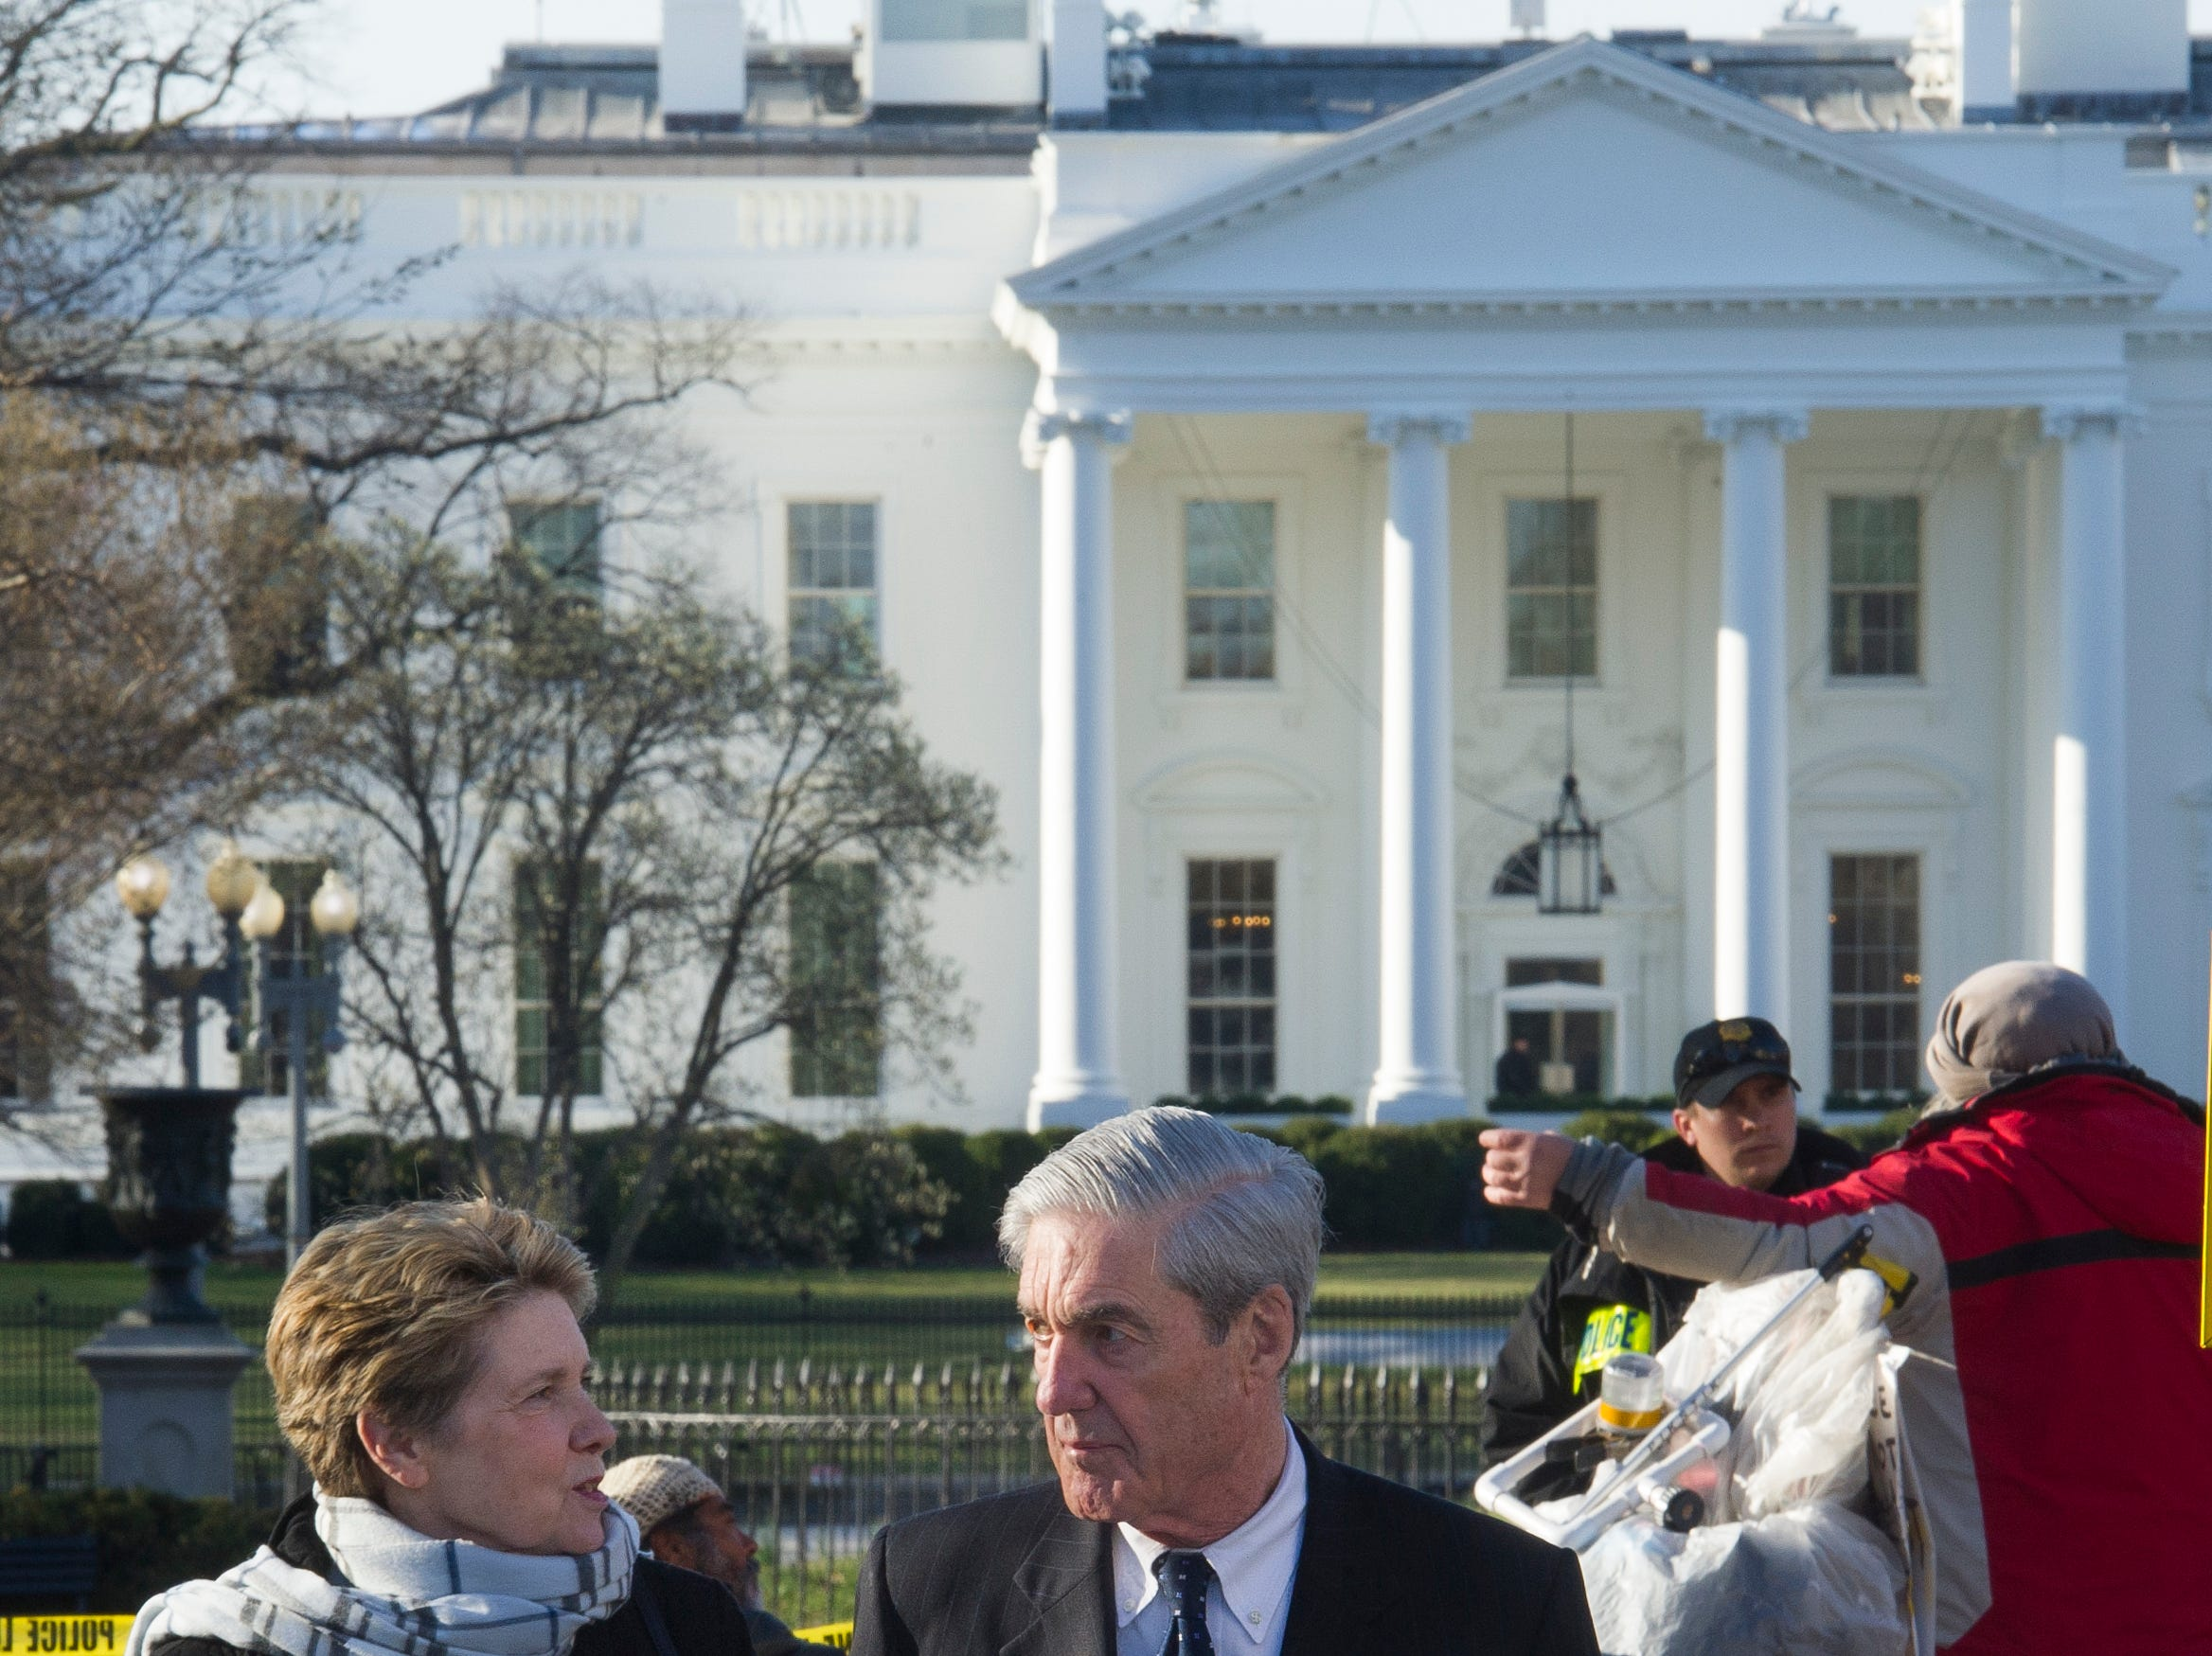 Robert Mueller, and his wife Ann, walk past the White House, after attending St. John's Episcopal Church for morning services on March 24, 2019 in Washington.